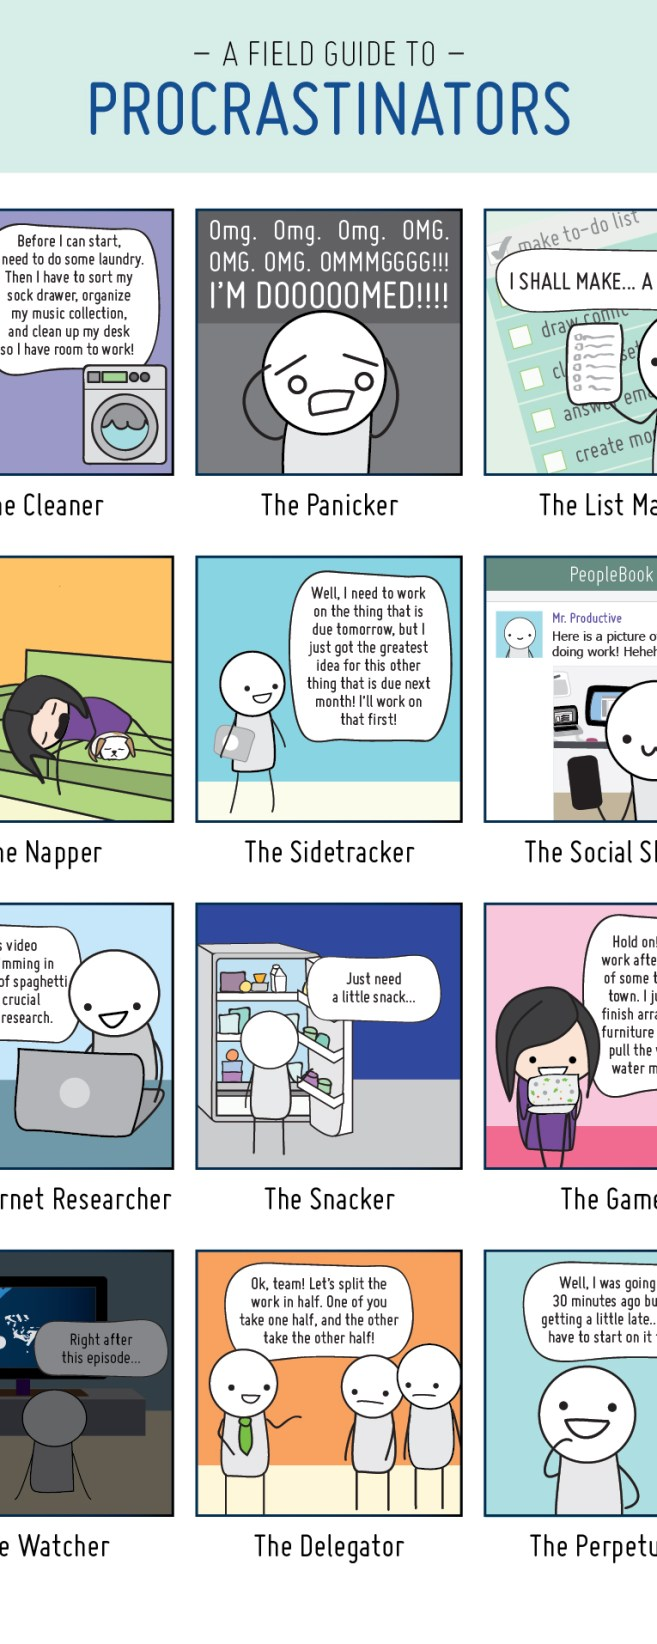 A Field Guide to Procrastinators - 12 Types of Procrastinators - Find the procrastinator in you